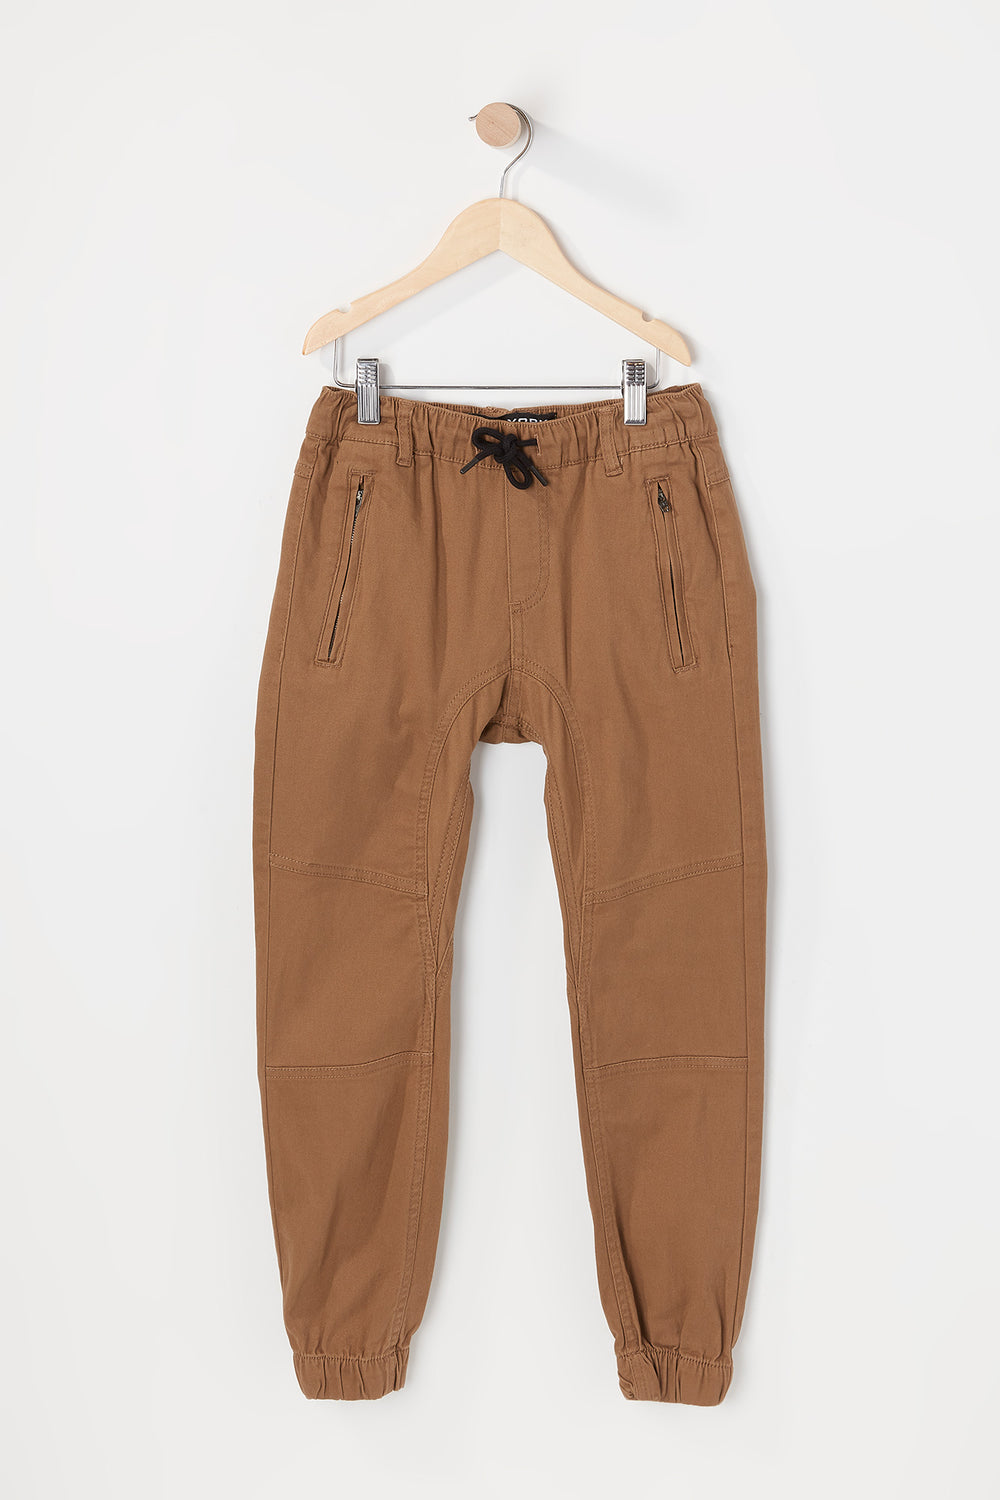 Zoo York Youth Solid Twill Zip Jogger Camel